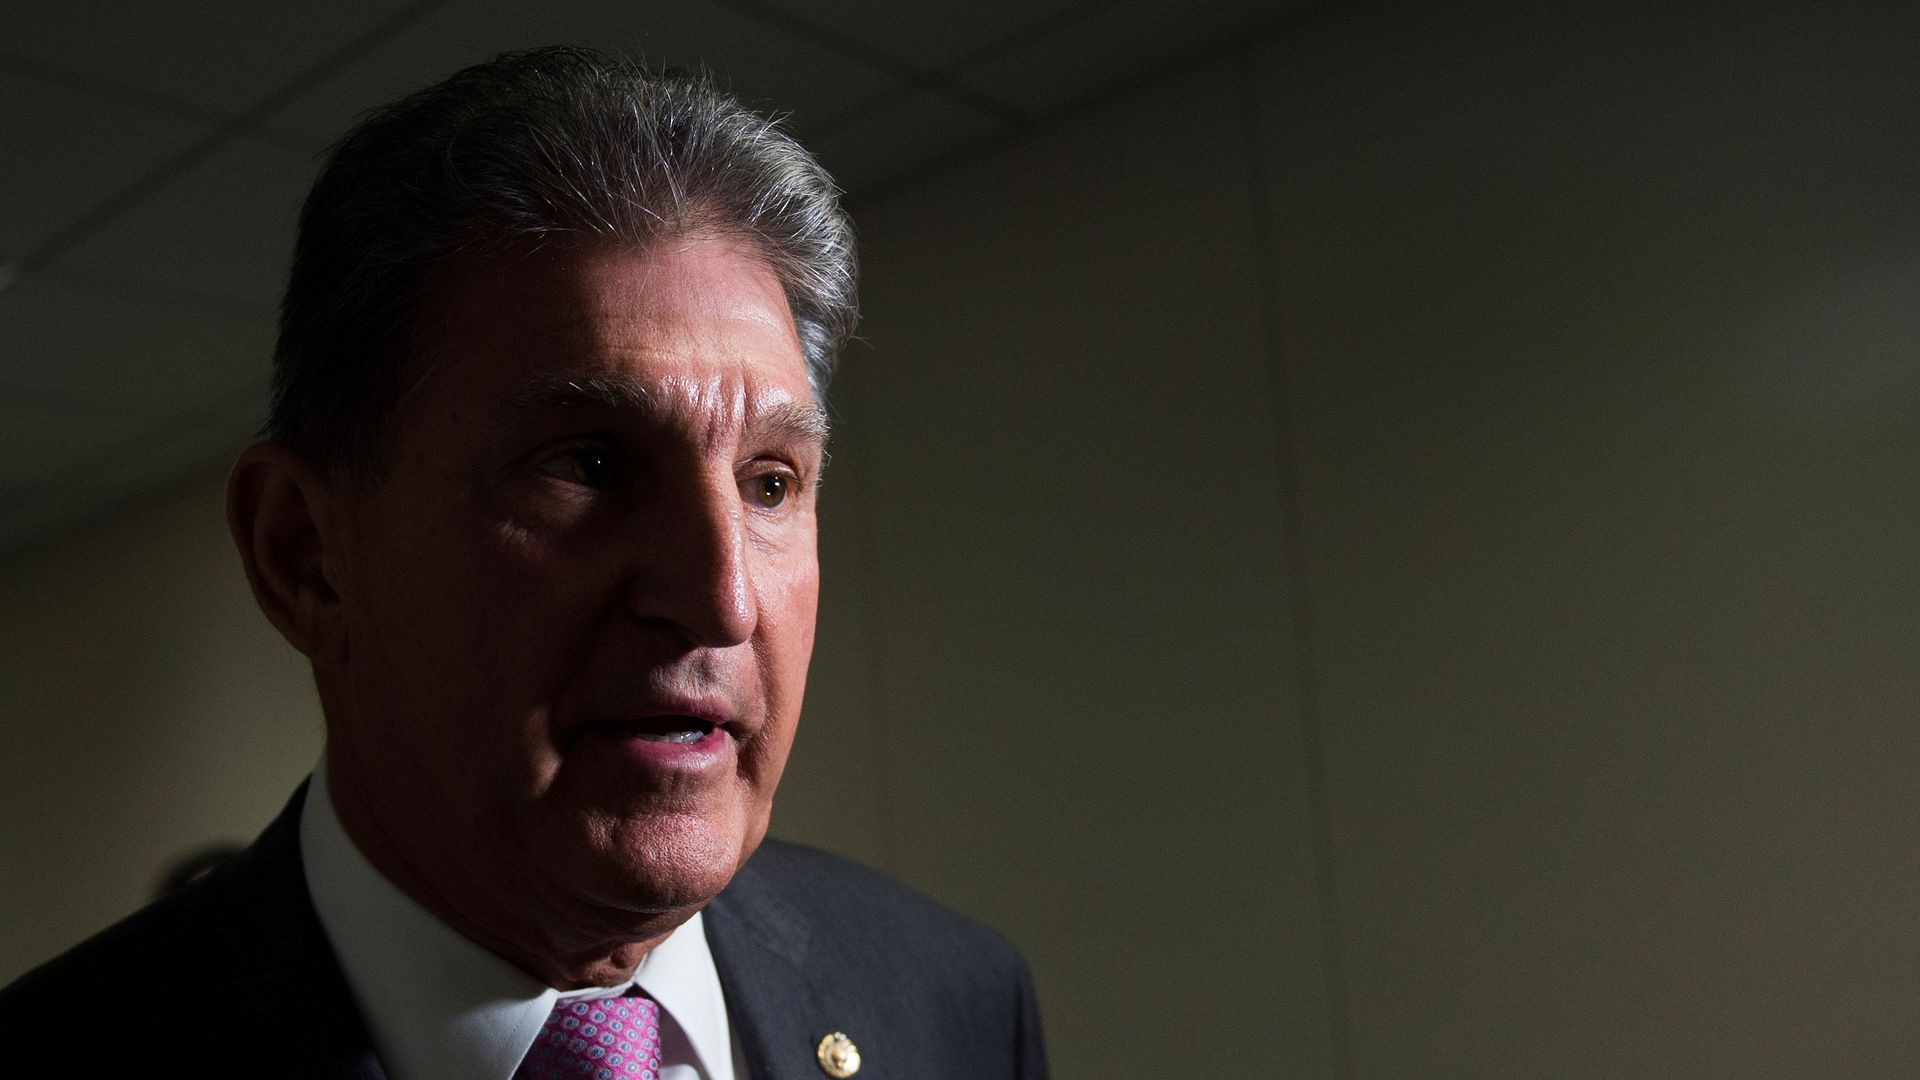 Sen. Manchin in darkness